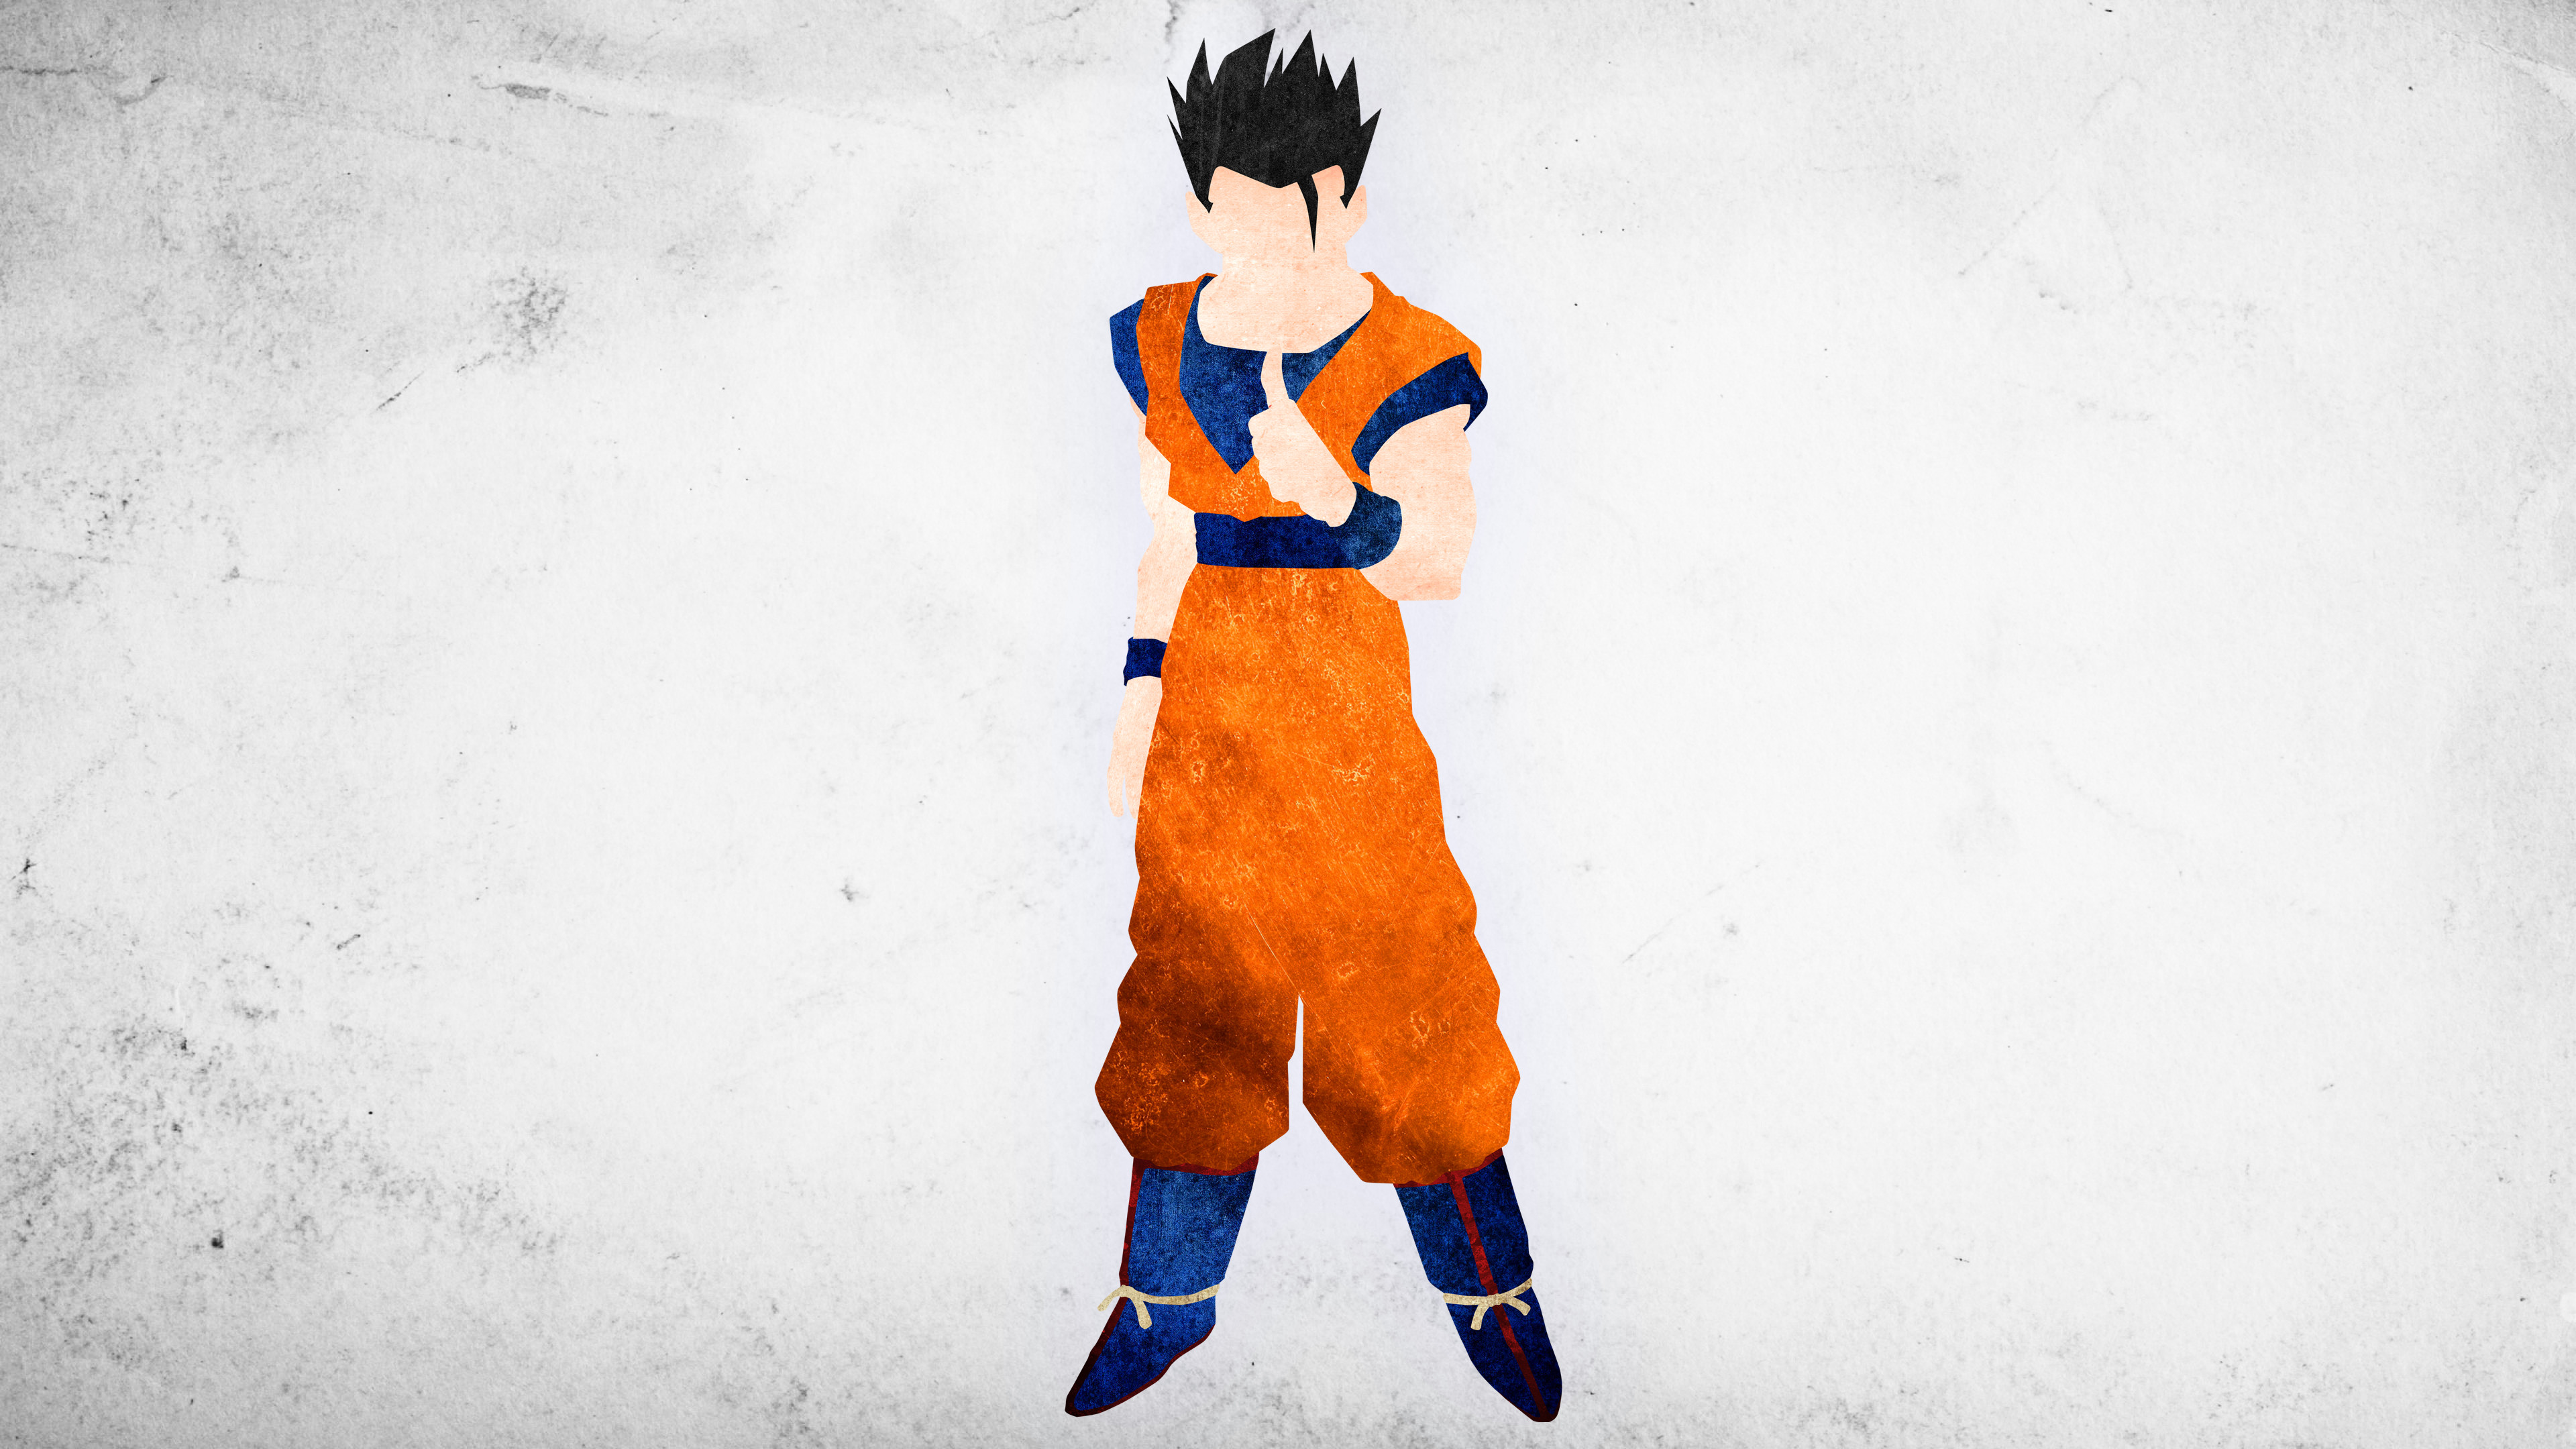 Res: 3840x2160, Ultimate Gohan Minimalisitc Wallpaper by KhUnlimited Ultimate Gohan  Minimalisitc Wallpaper by KhUnlimited